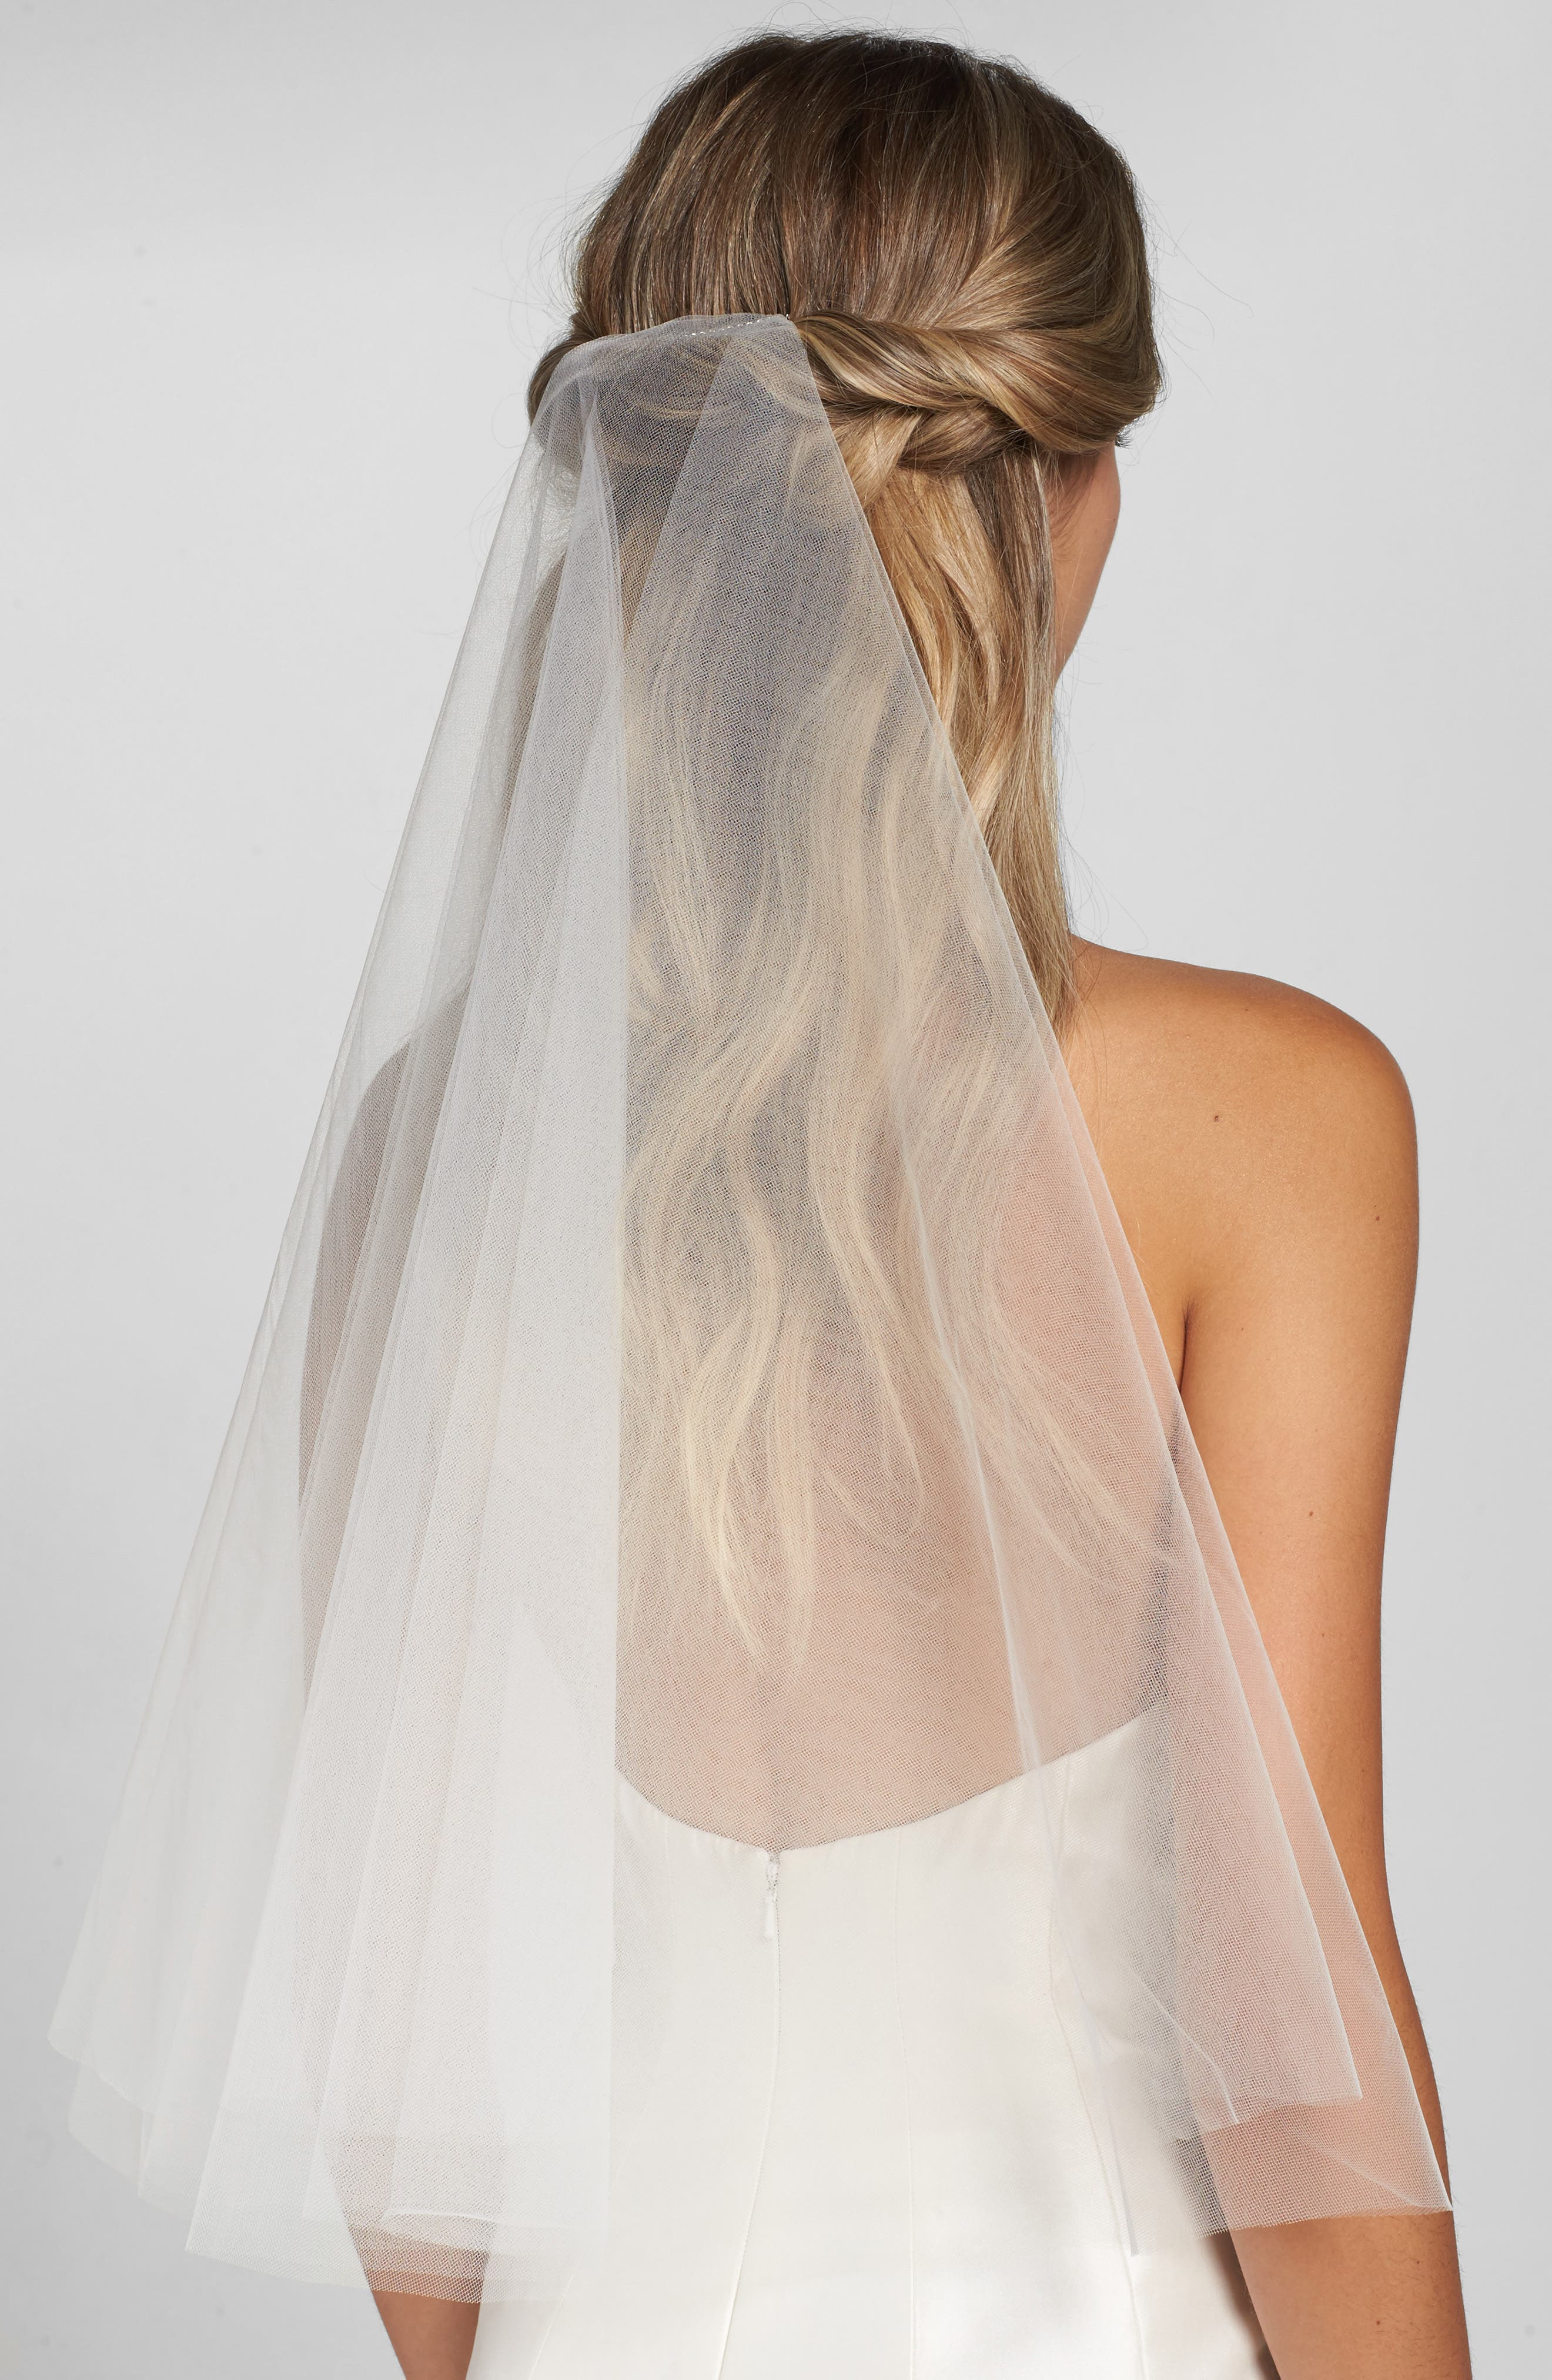 'Madeline' Two Tier Circle Veil,                             Main thumbnail 1, color,                             901